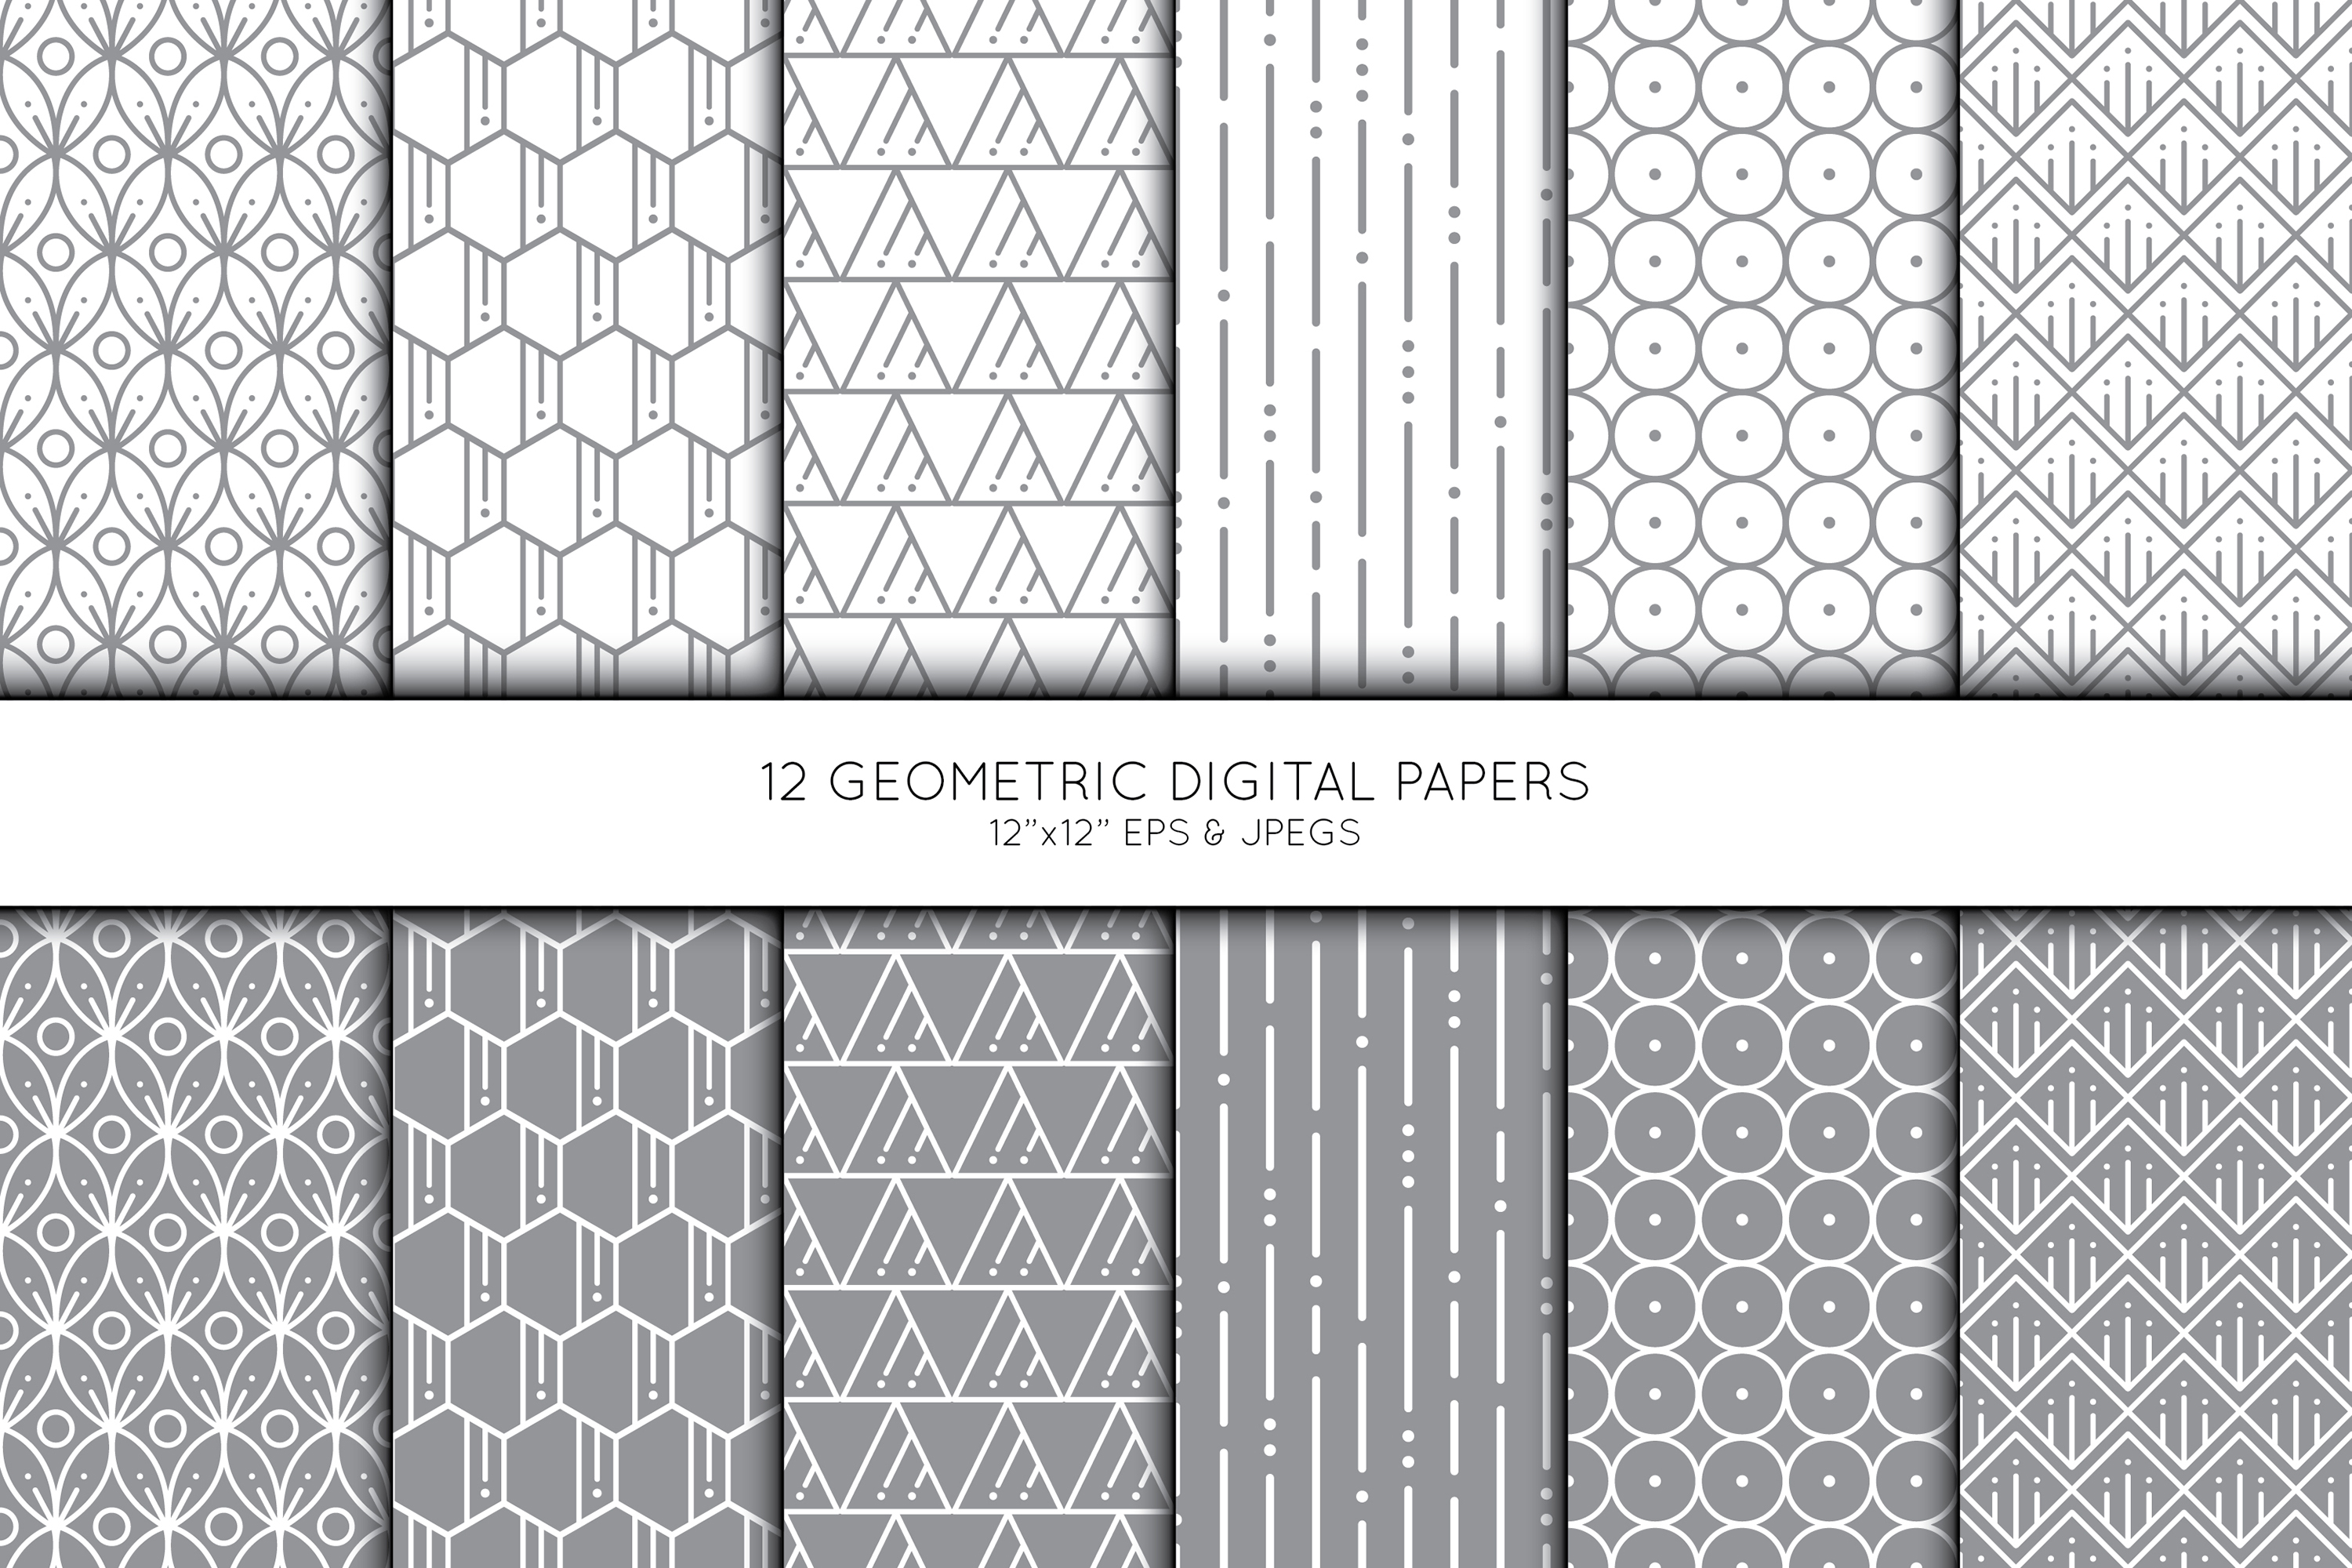 Contact Paper Patterns